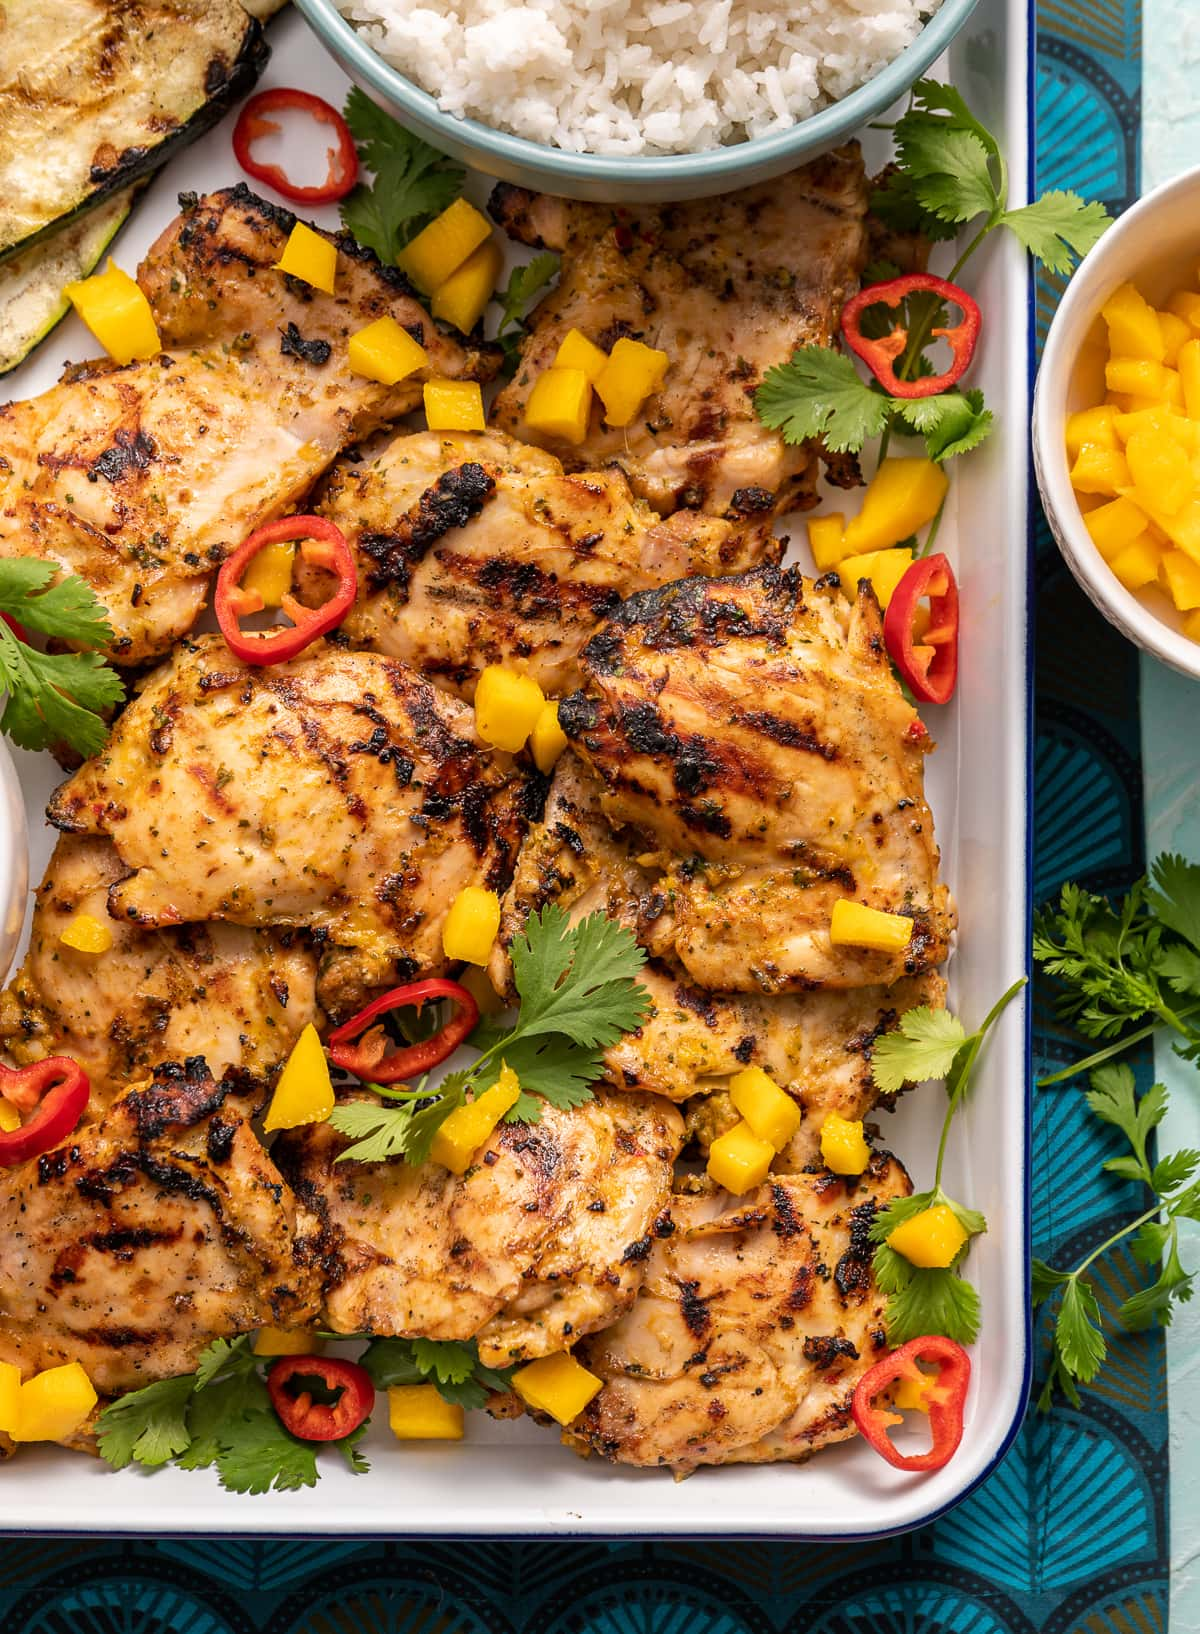 grilled chicken on a tray with mango and red chili slices cilanto pieces